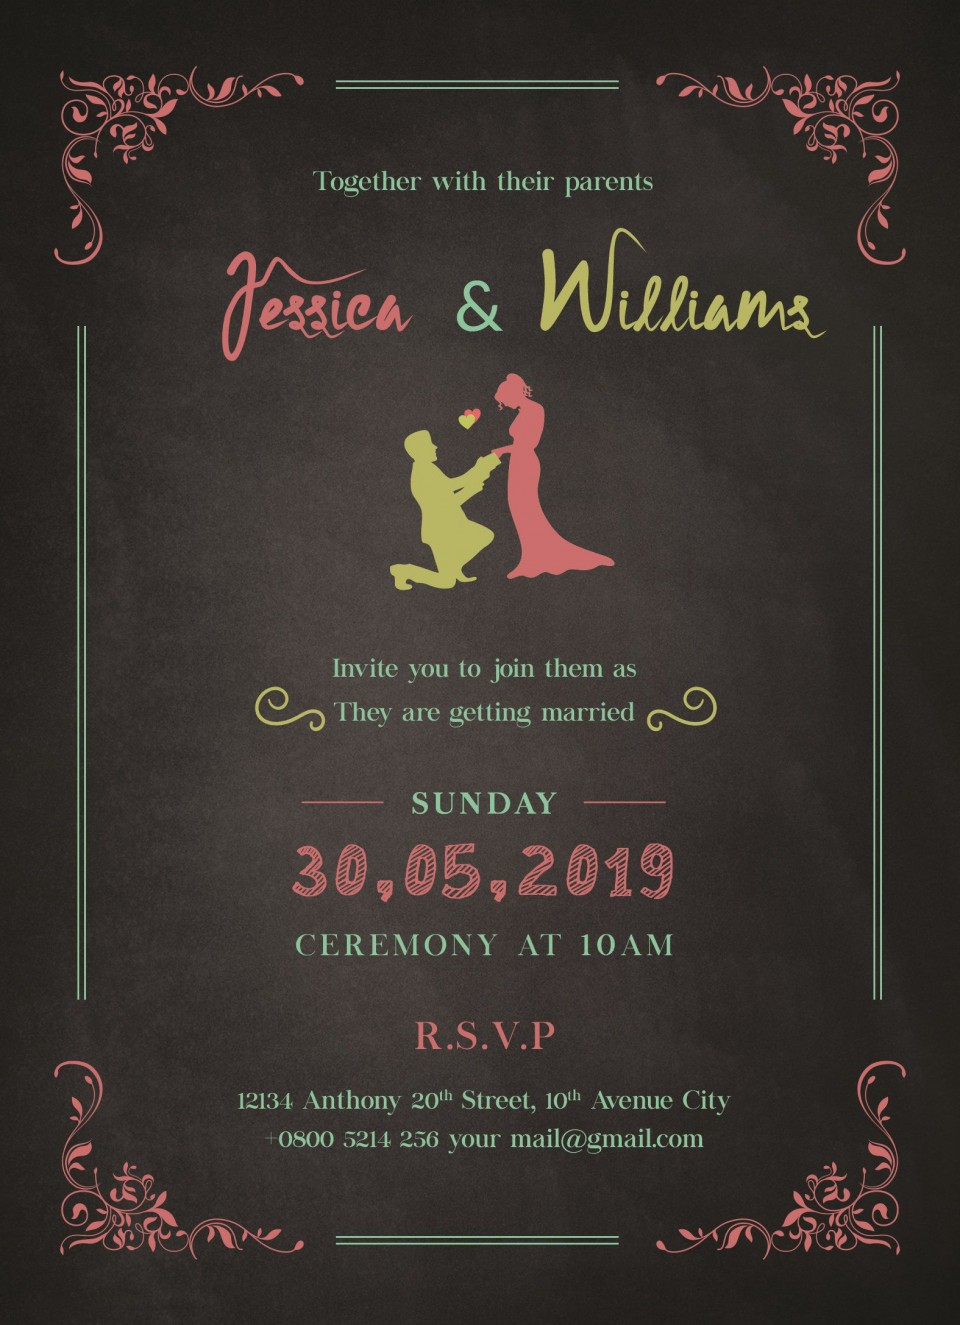 009 Imposing Free Download Invitation Card Design Software Sample  Full Version Wedding For Pc960